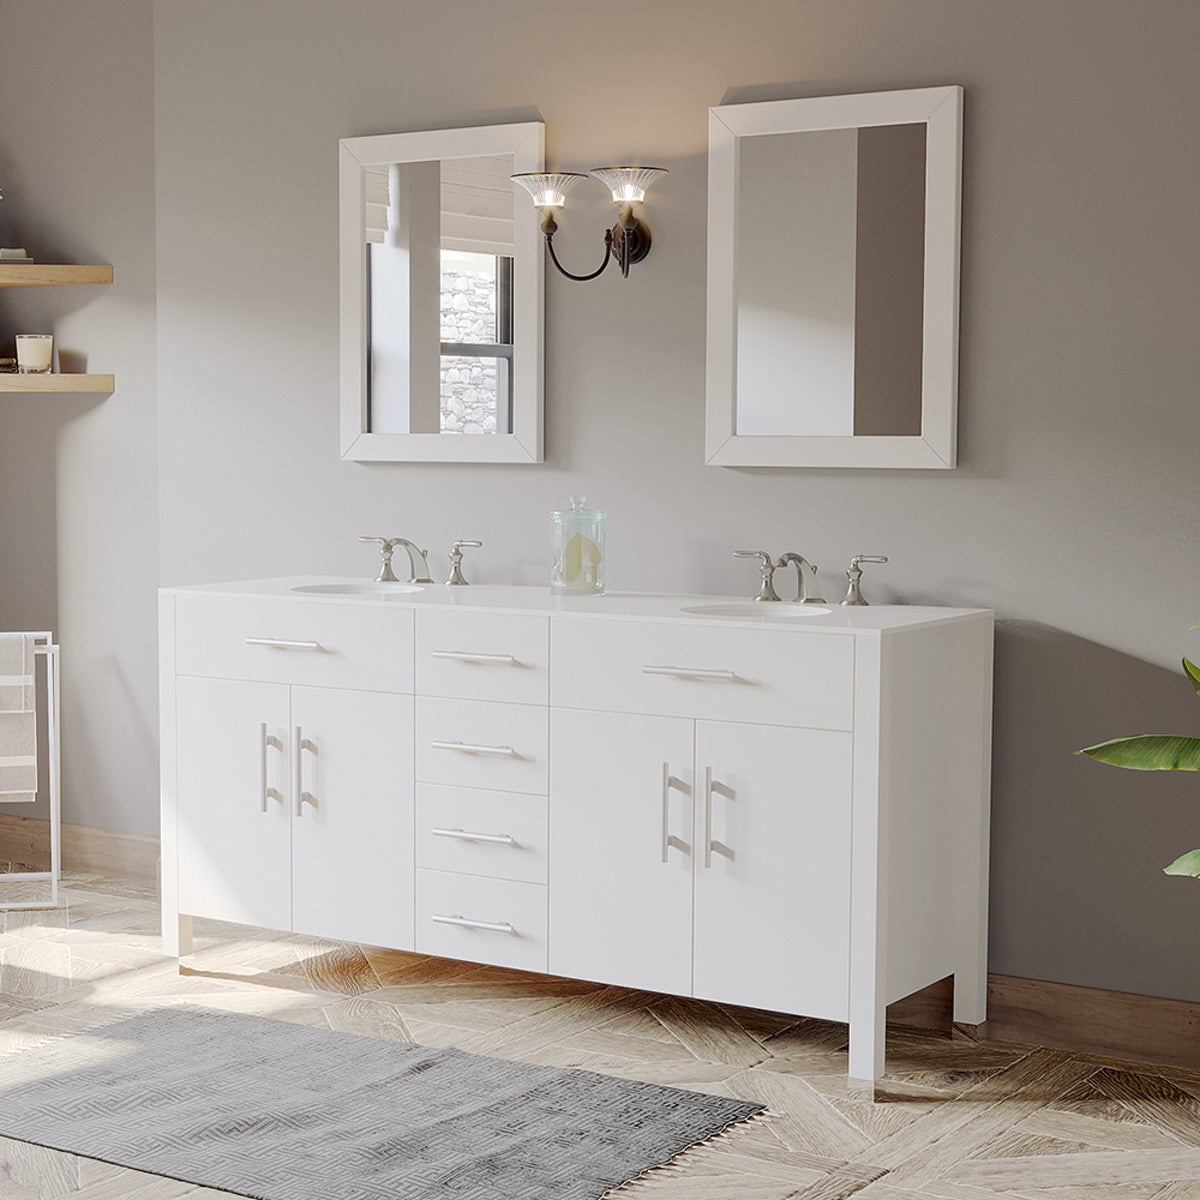 Outstanding Cambridge Plumbing 72 Inch White Solid Wood And Porcelain Double Vanity Set 8162W Home Interior And Landscaping Ferensignezvosmurscom